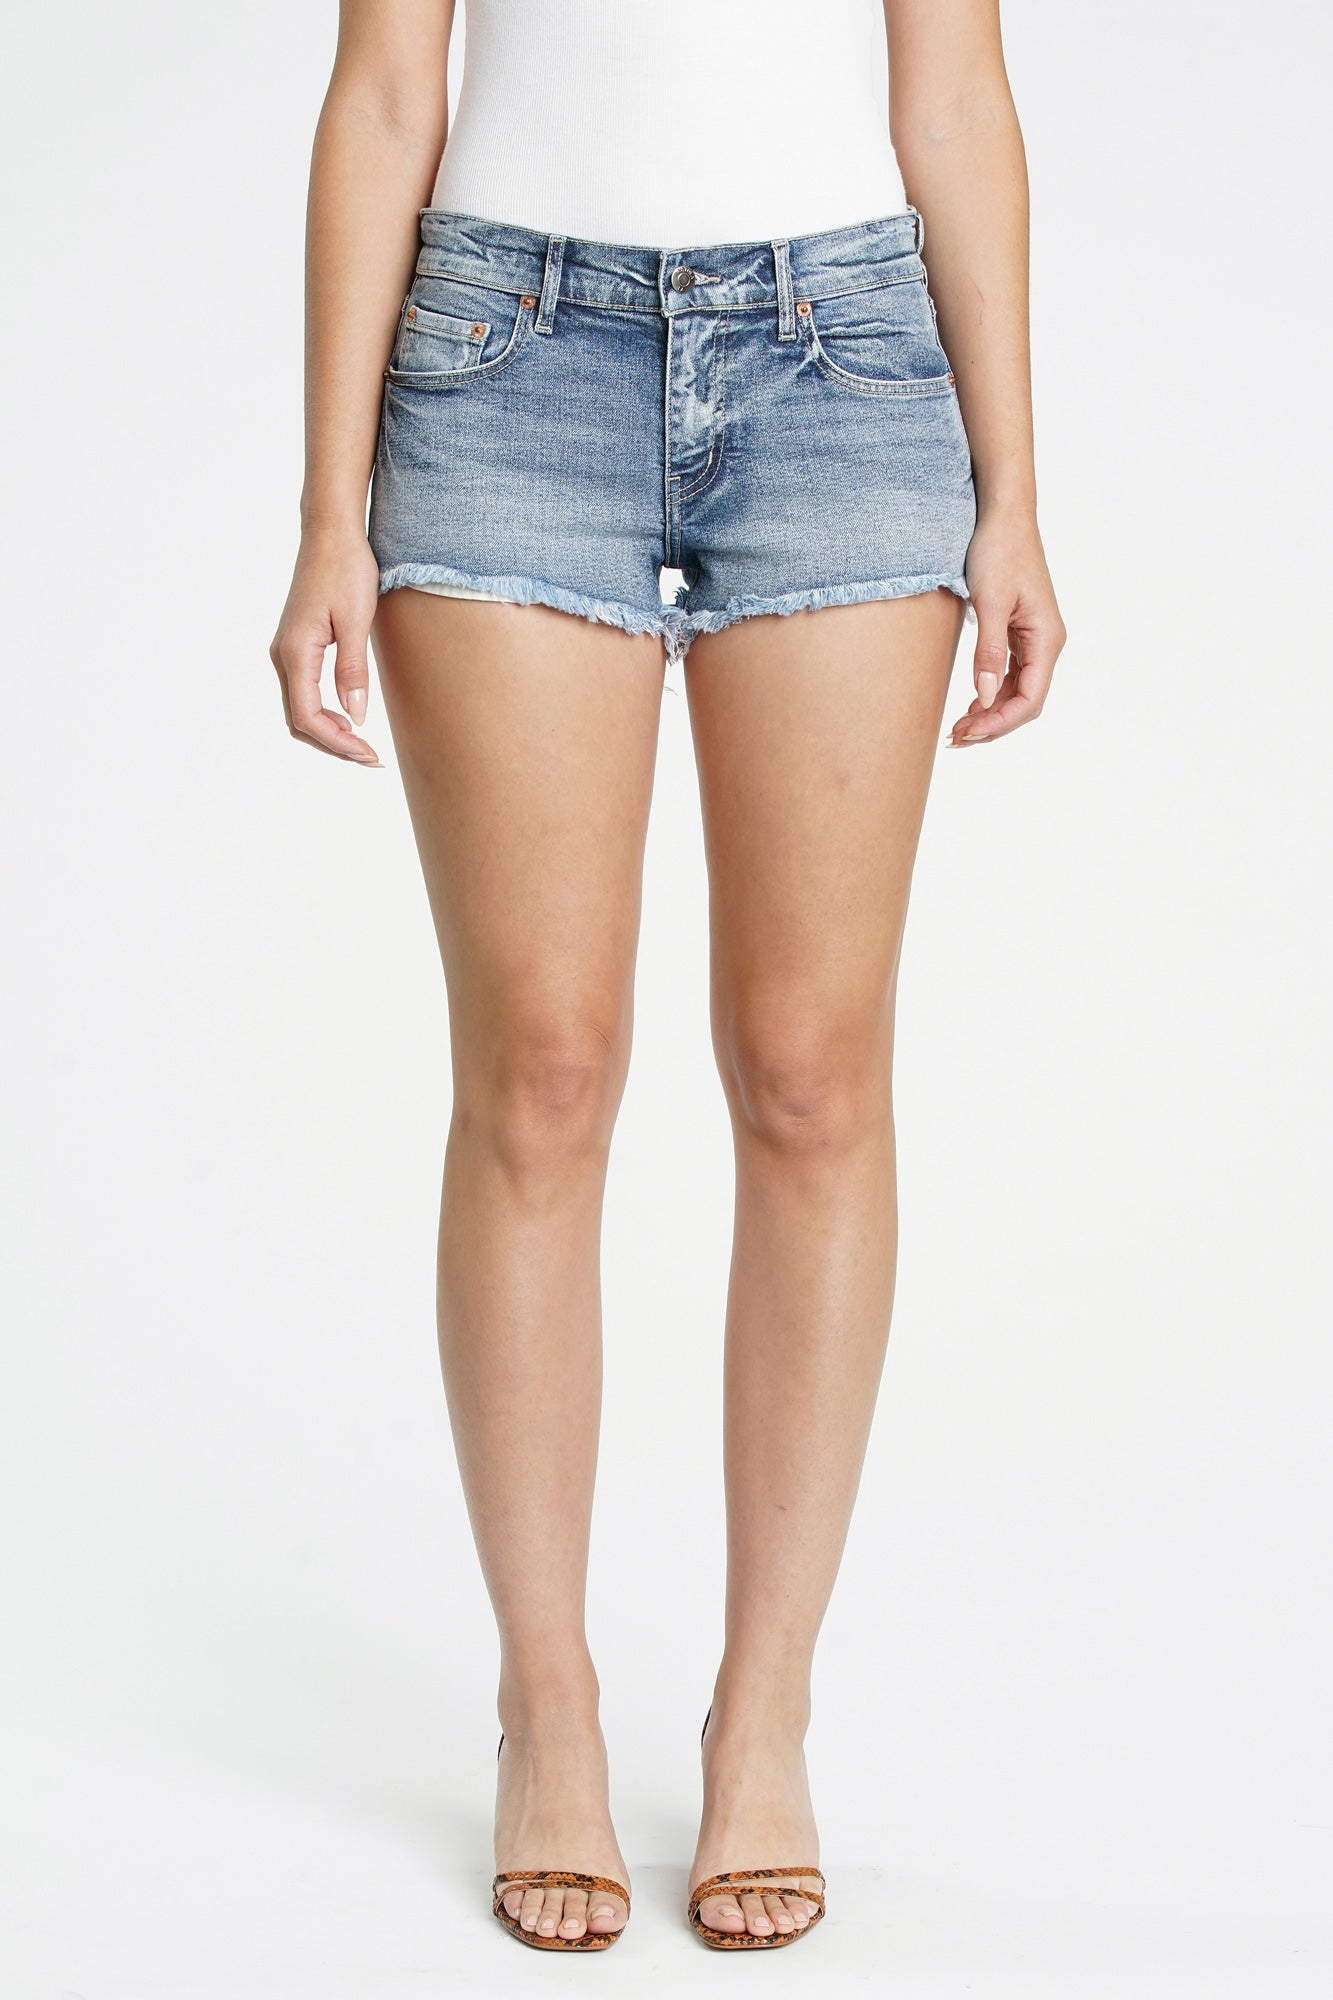 Gigi Low Rise Cut Off - Trippin